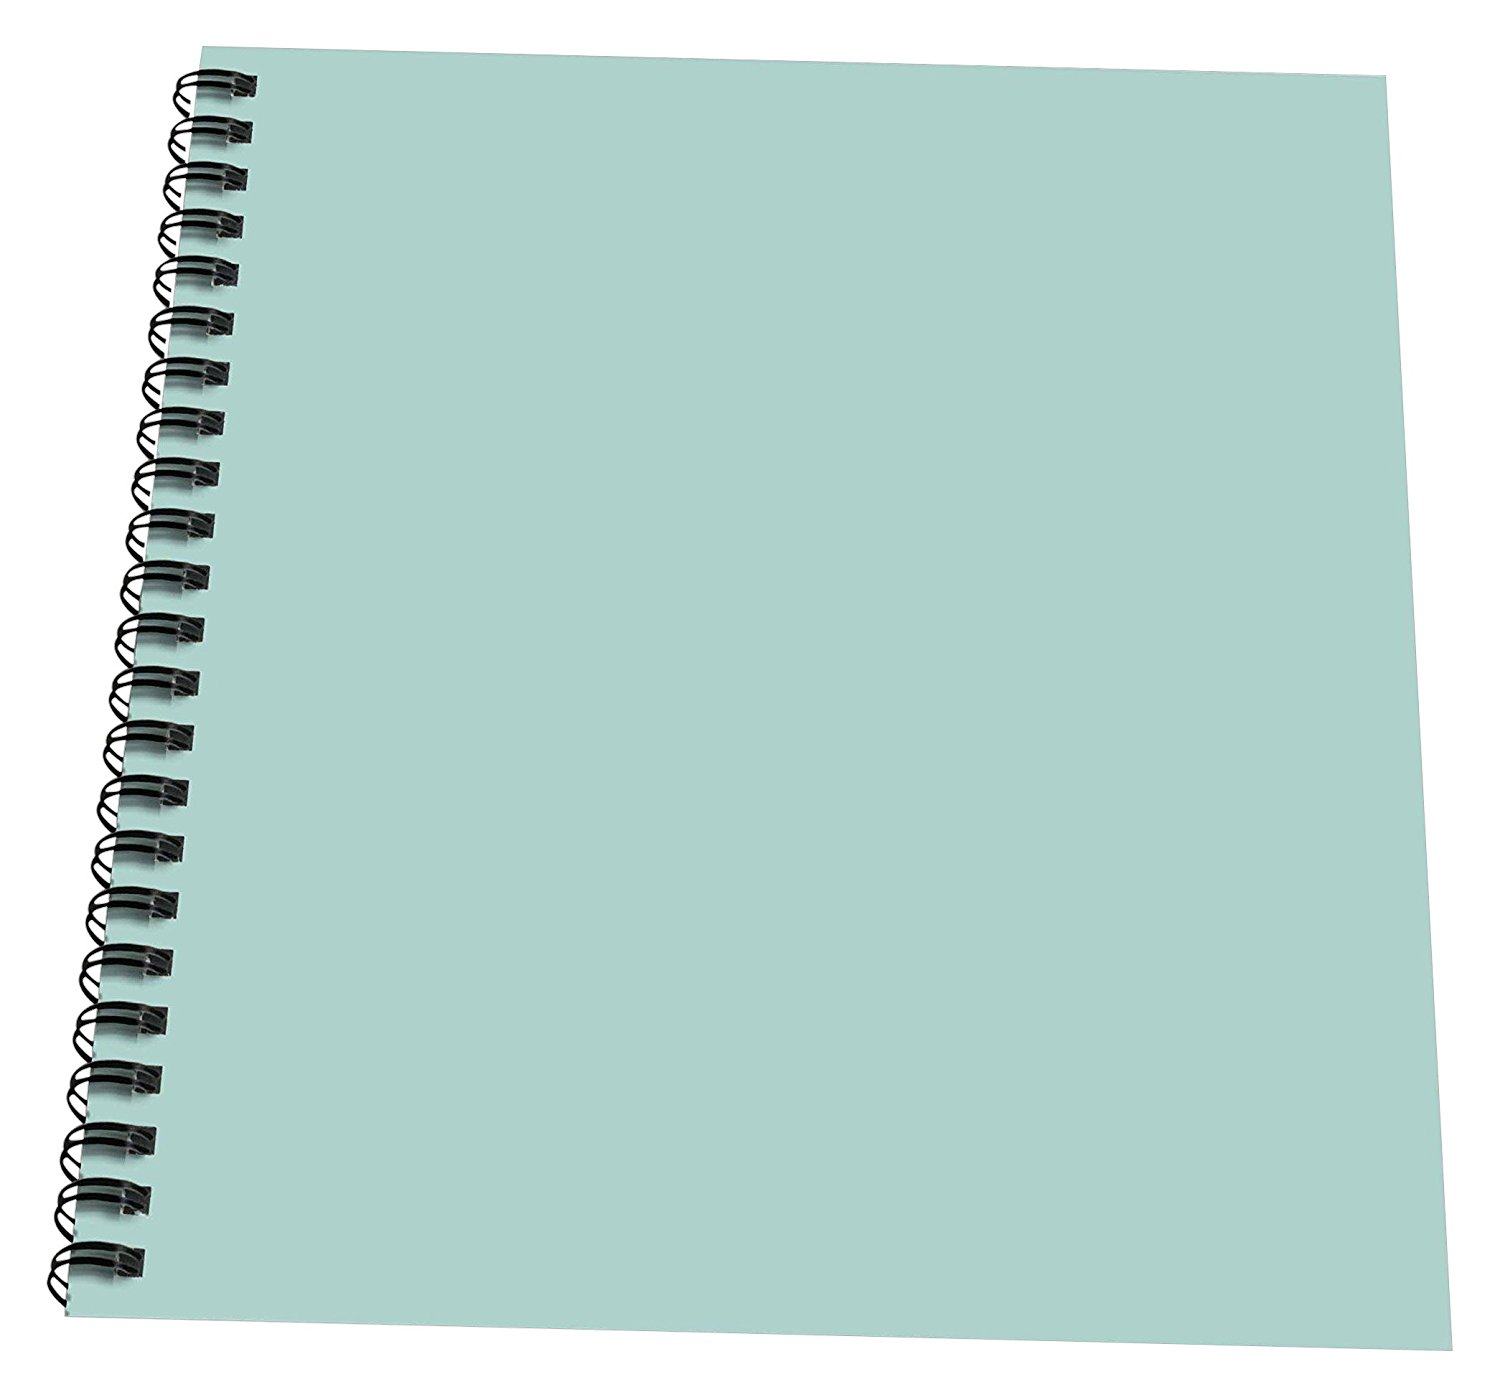 "3dRose db_159844_2 Plain Mint Blue Solid Color Light Turquoise-Grey-Gray Modern Contemporary Simple Pastel Teal Memory Book, 12"" x 12"""